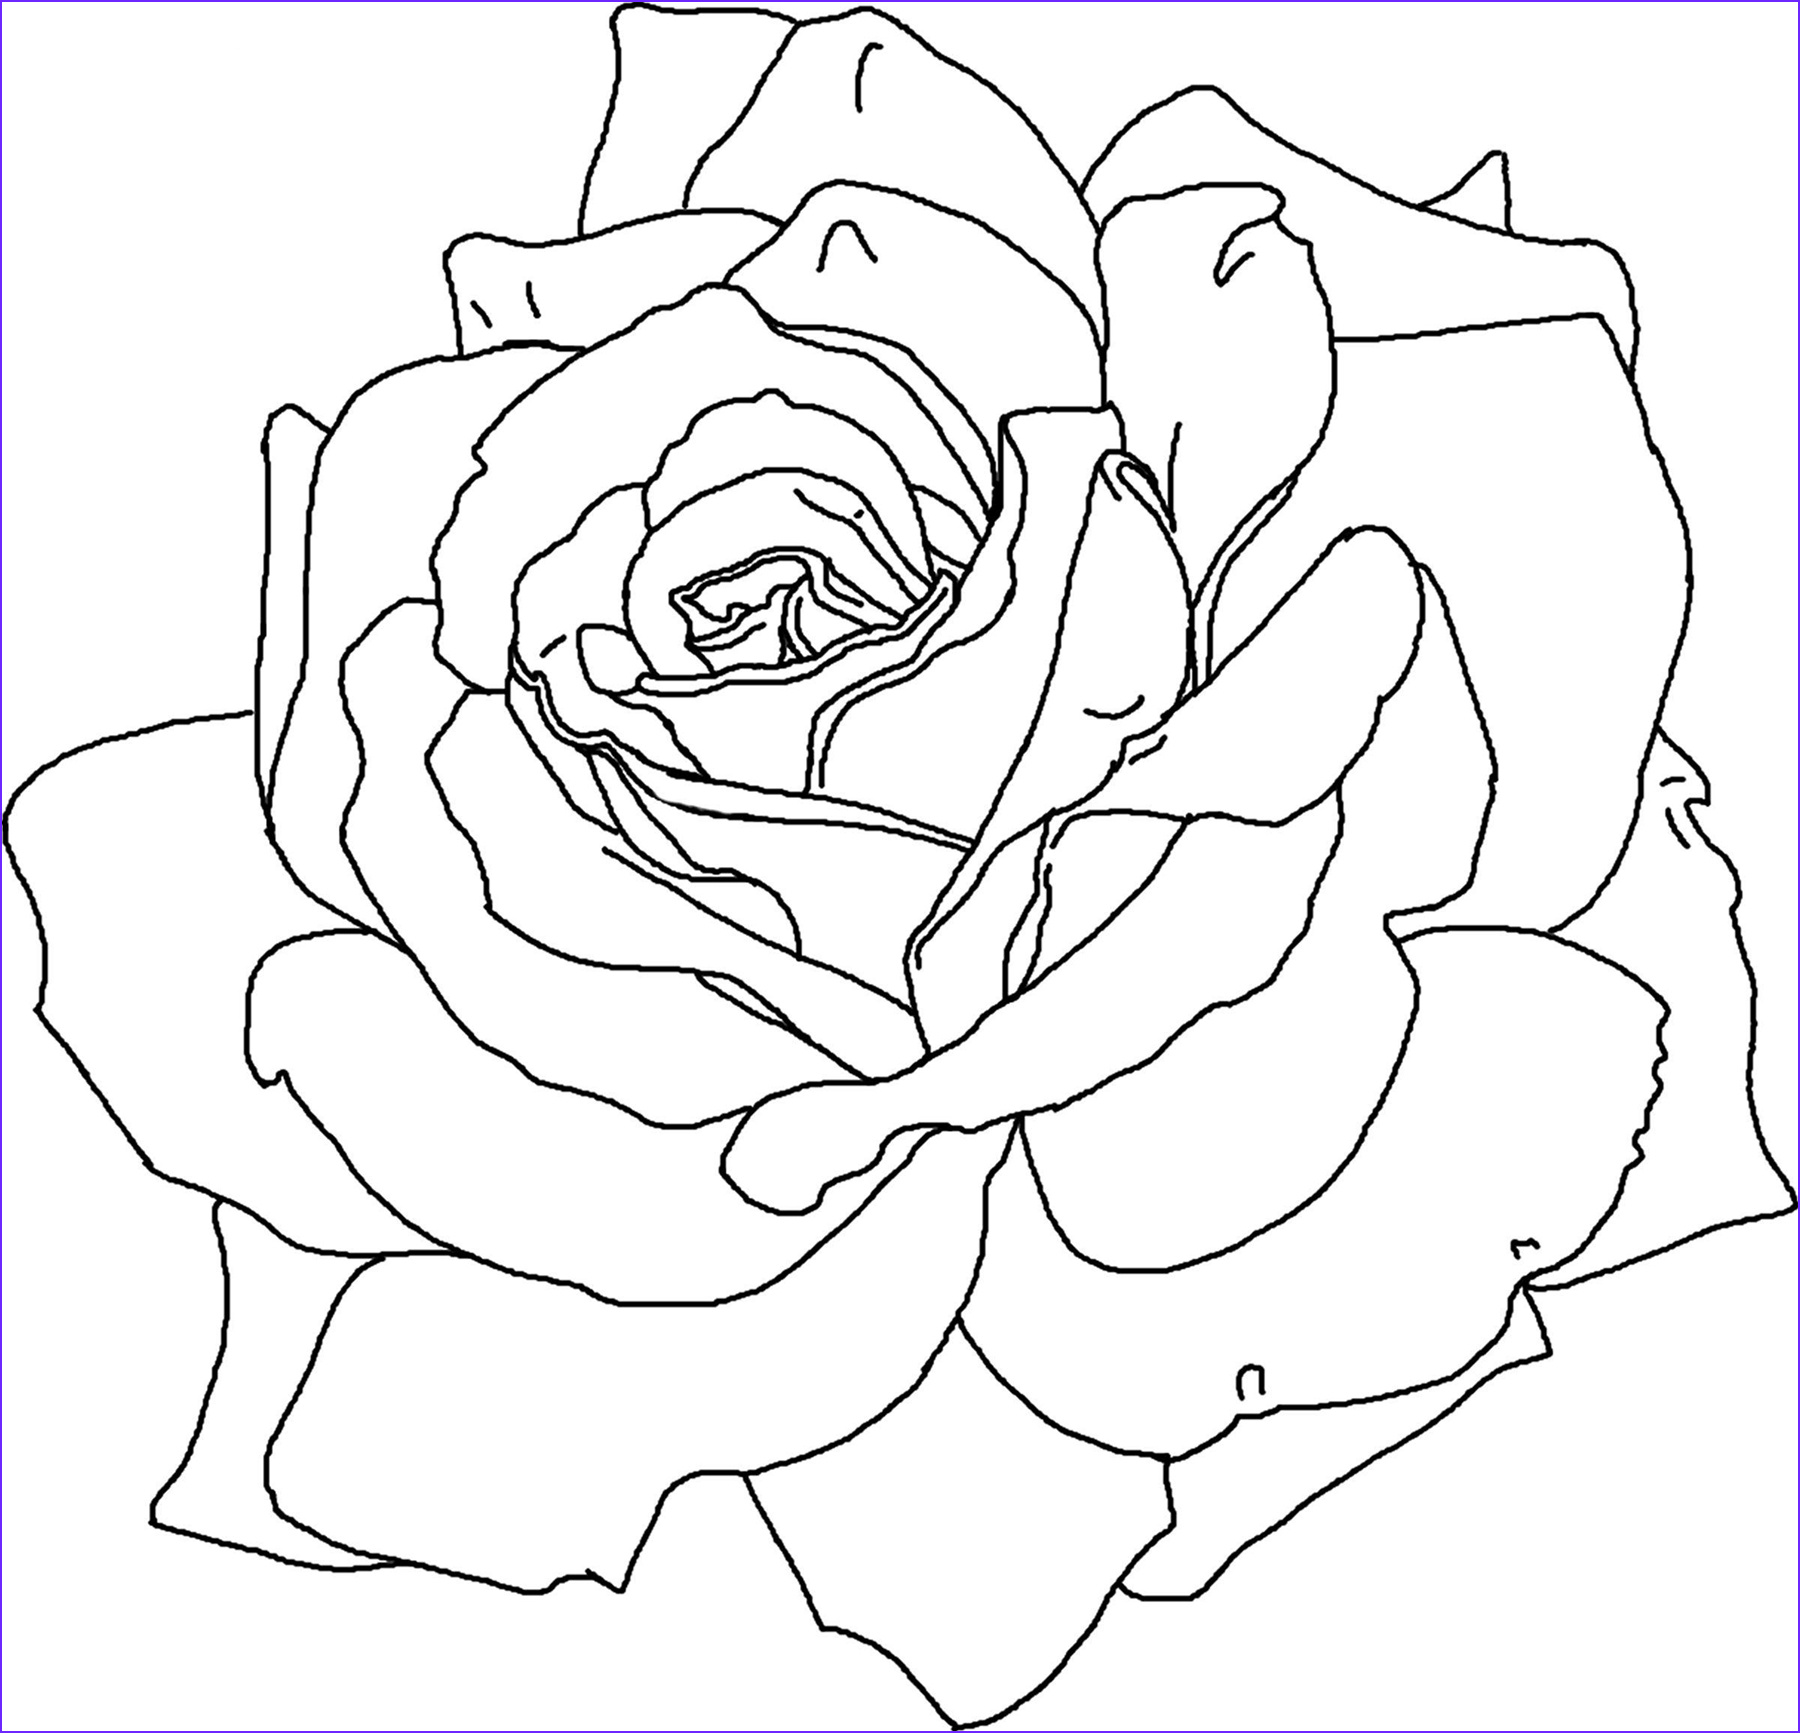 Flower Coloring Pages for Adults Beautiful Photography Free Printable Flower Coloring Pages for Kids Best